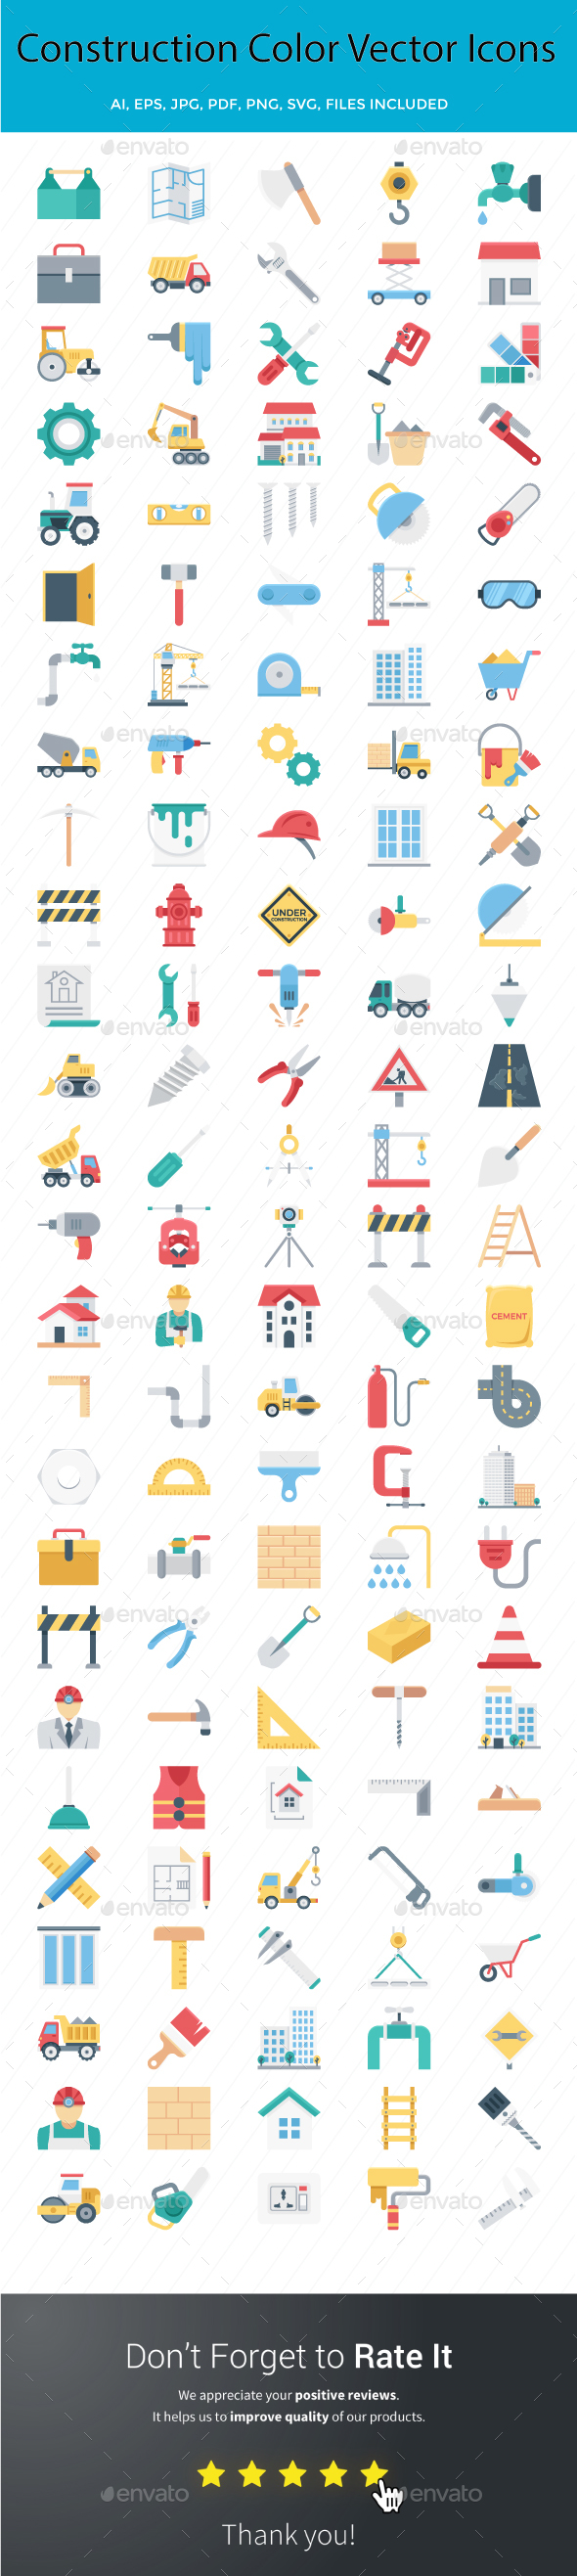 Construction Color Vector Icons Set - Icons